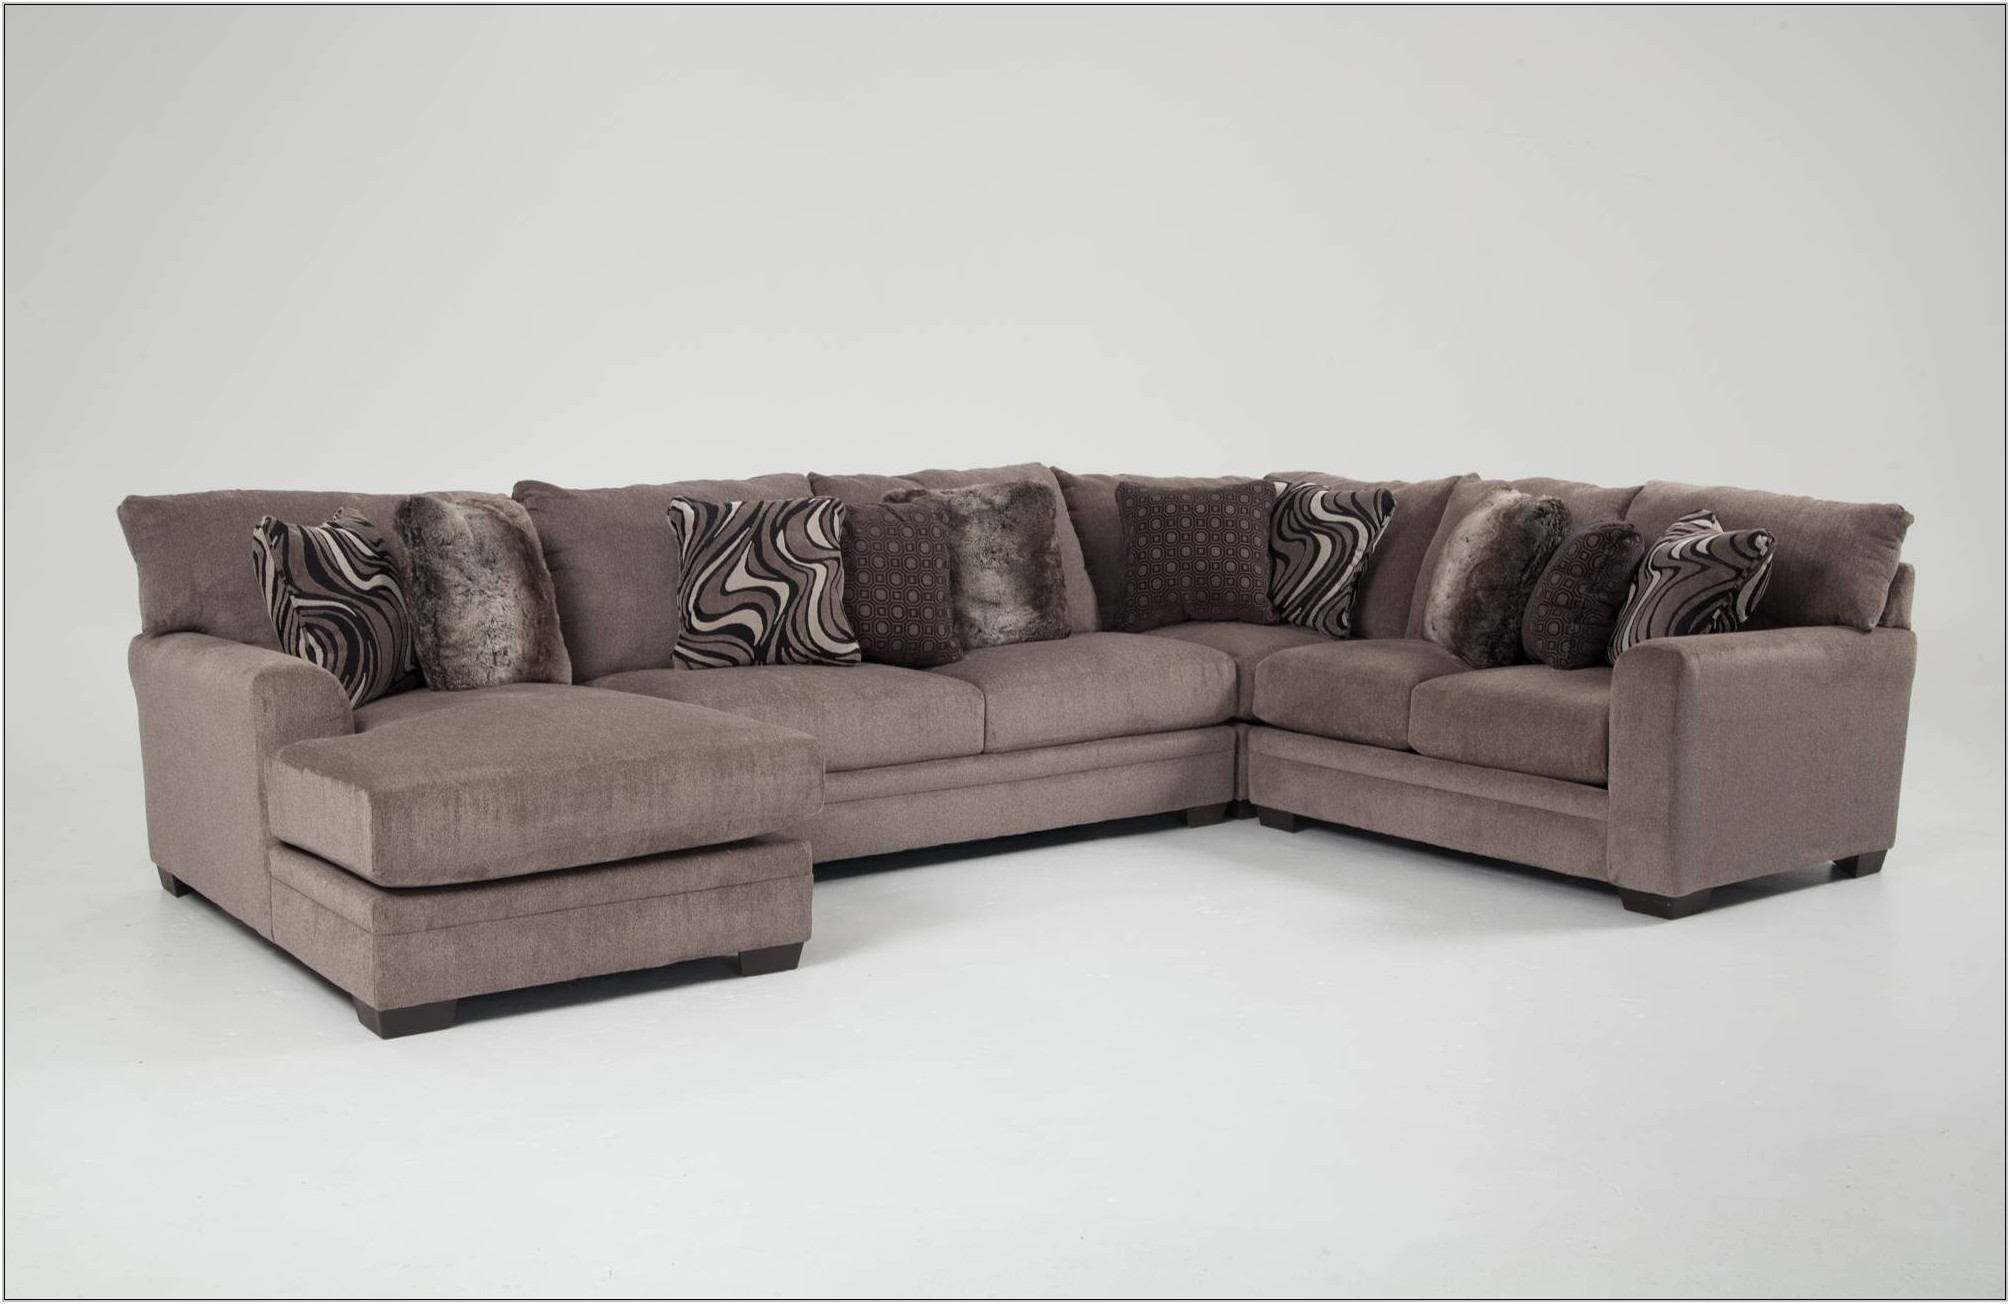 Living Room Sets At Bobs Furniture